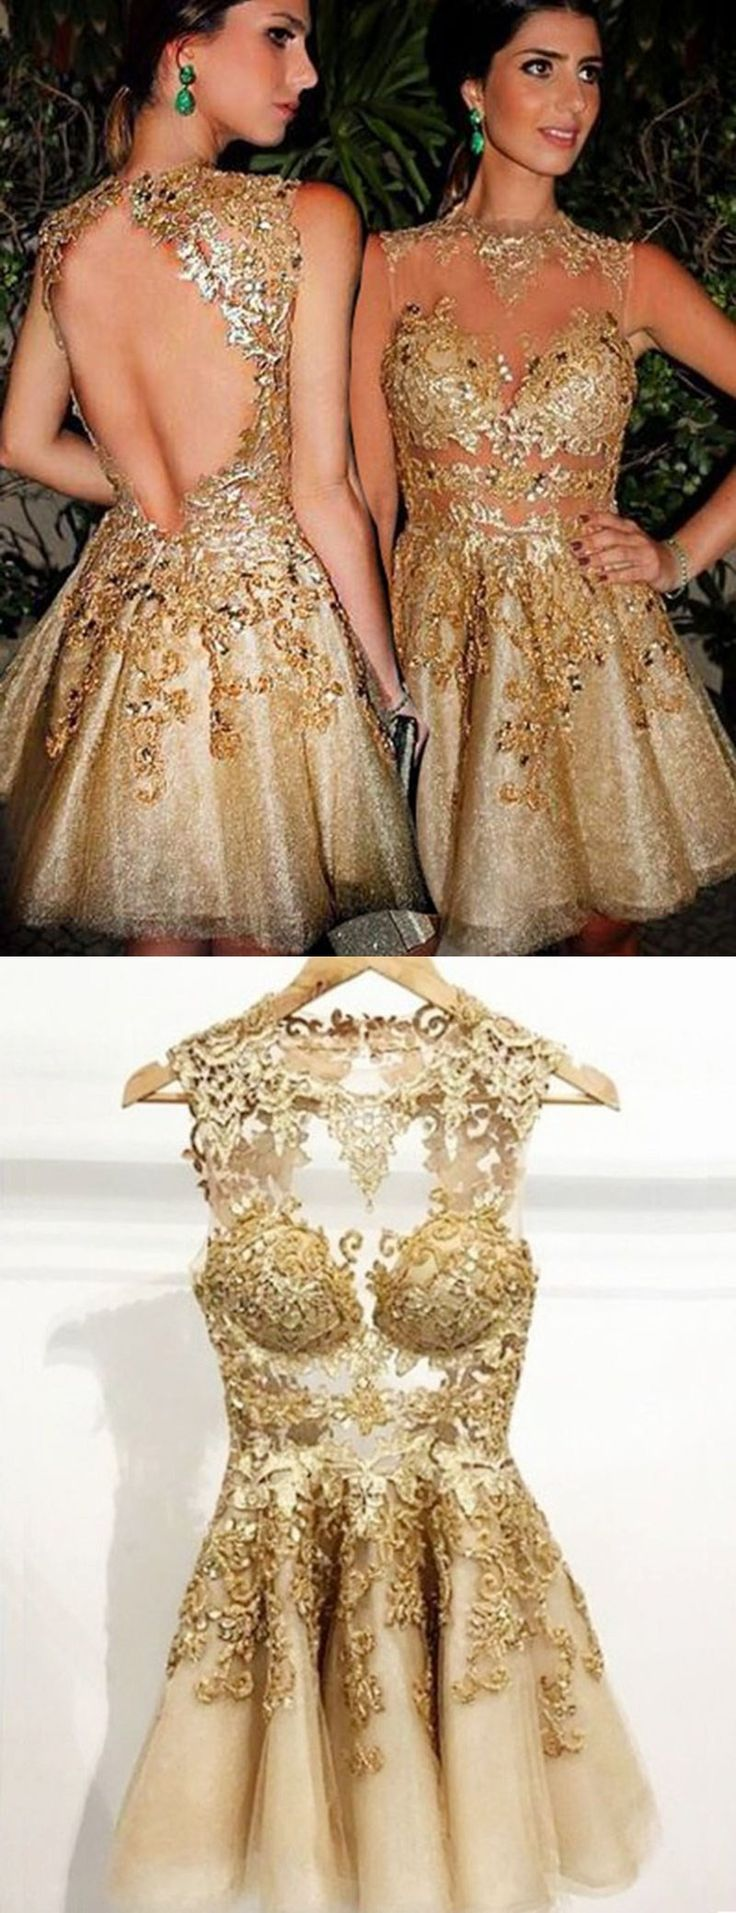 25 best ideas about gold homecoming dresses on pinterest